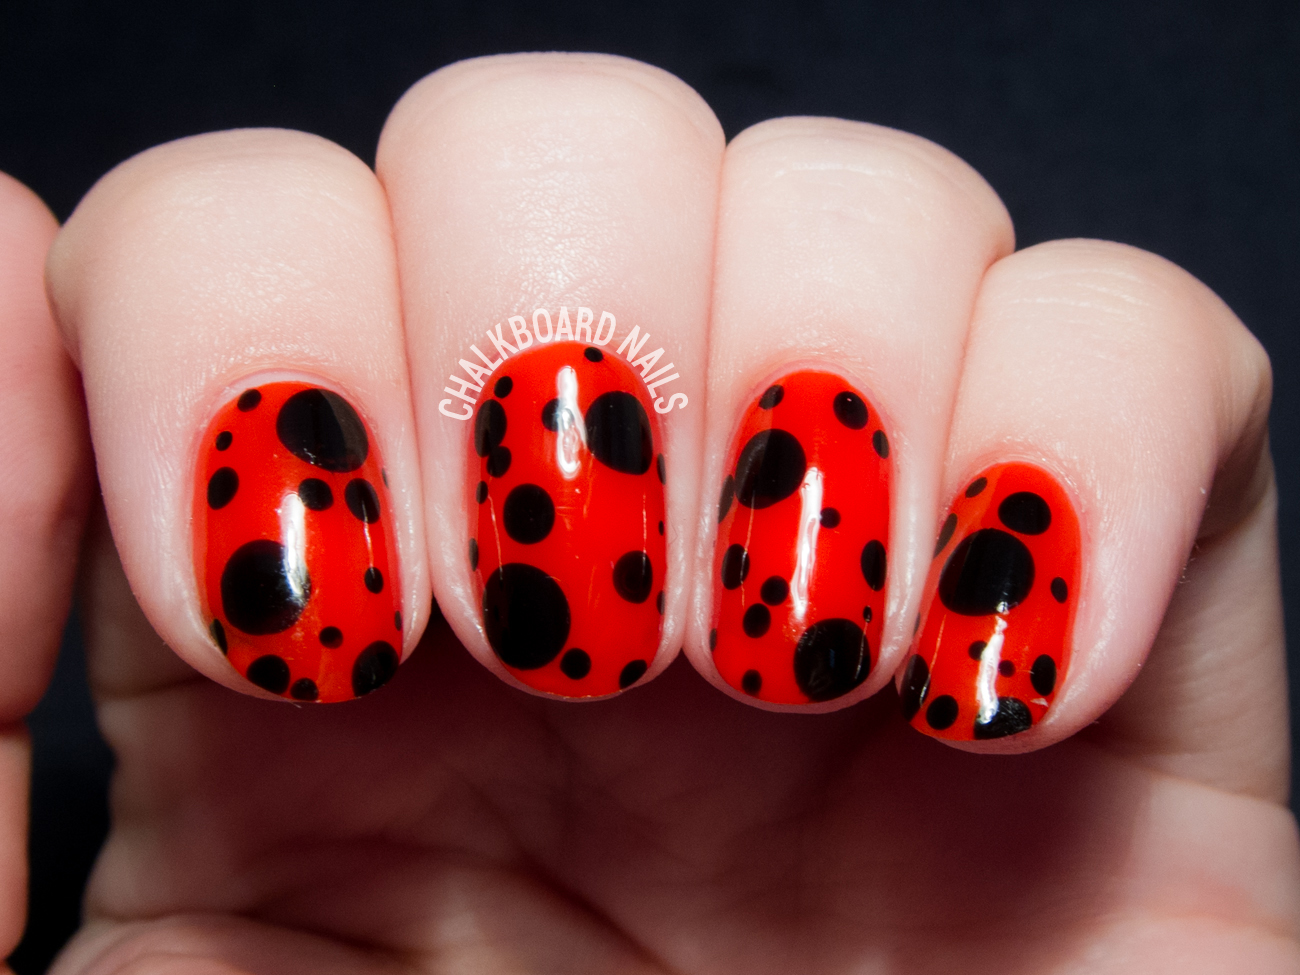 Easy ladybird inspired nail art by @chalkboardnails - Ladybird Inspired Nail Art Chalkboard Nails Nail Art Blog